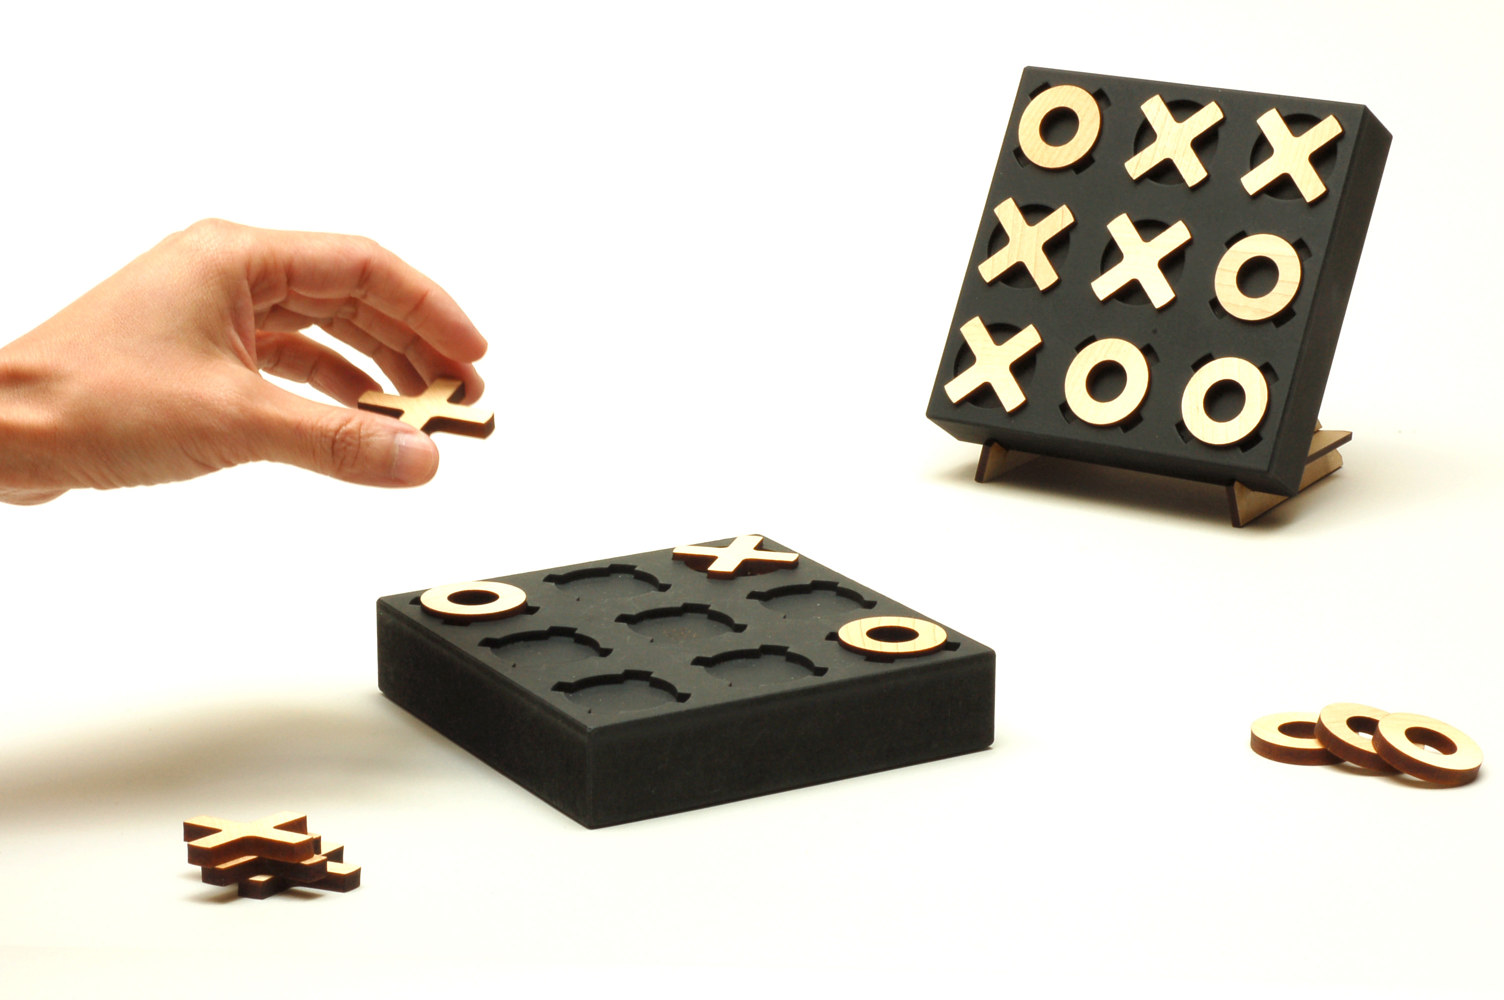 Tic Tac Toe, Black, Game Series by Wan-yi Lin